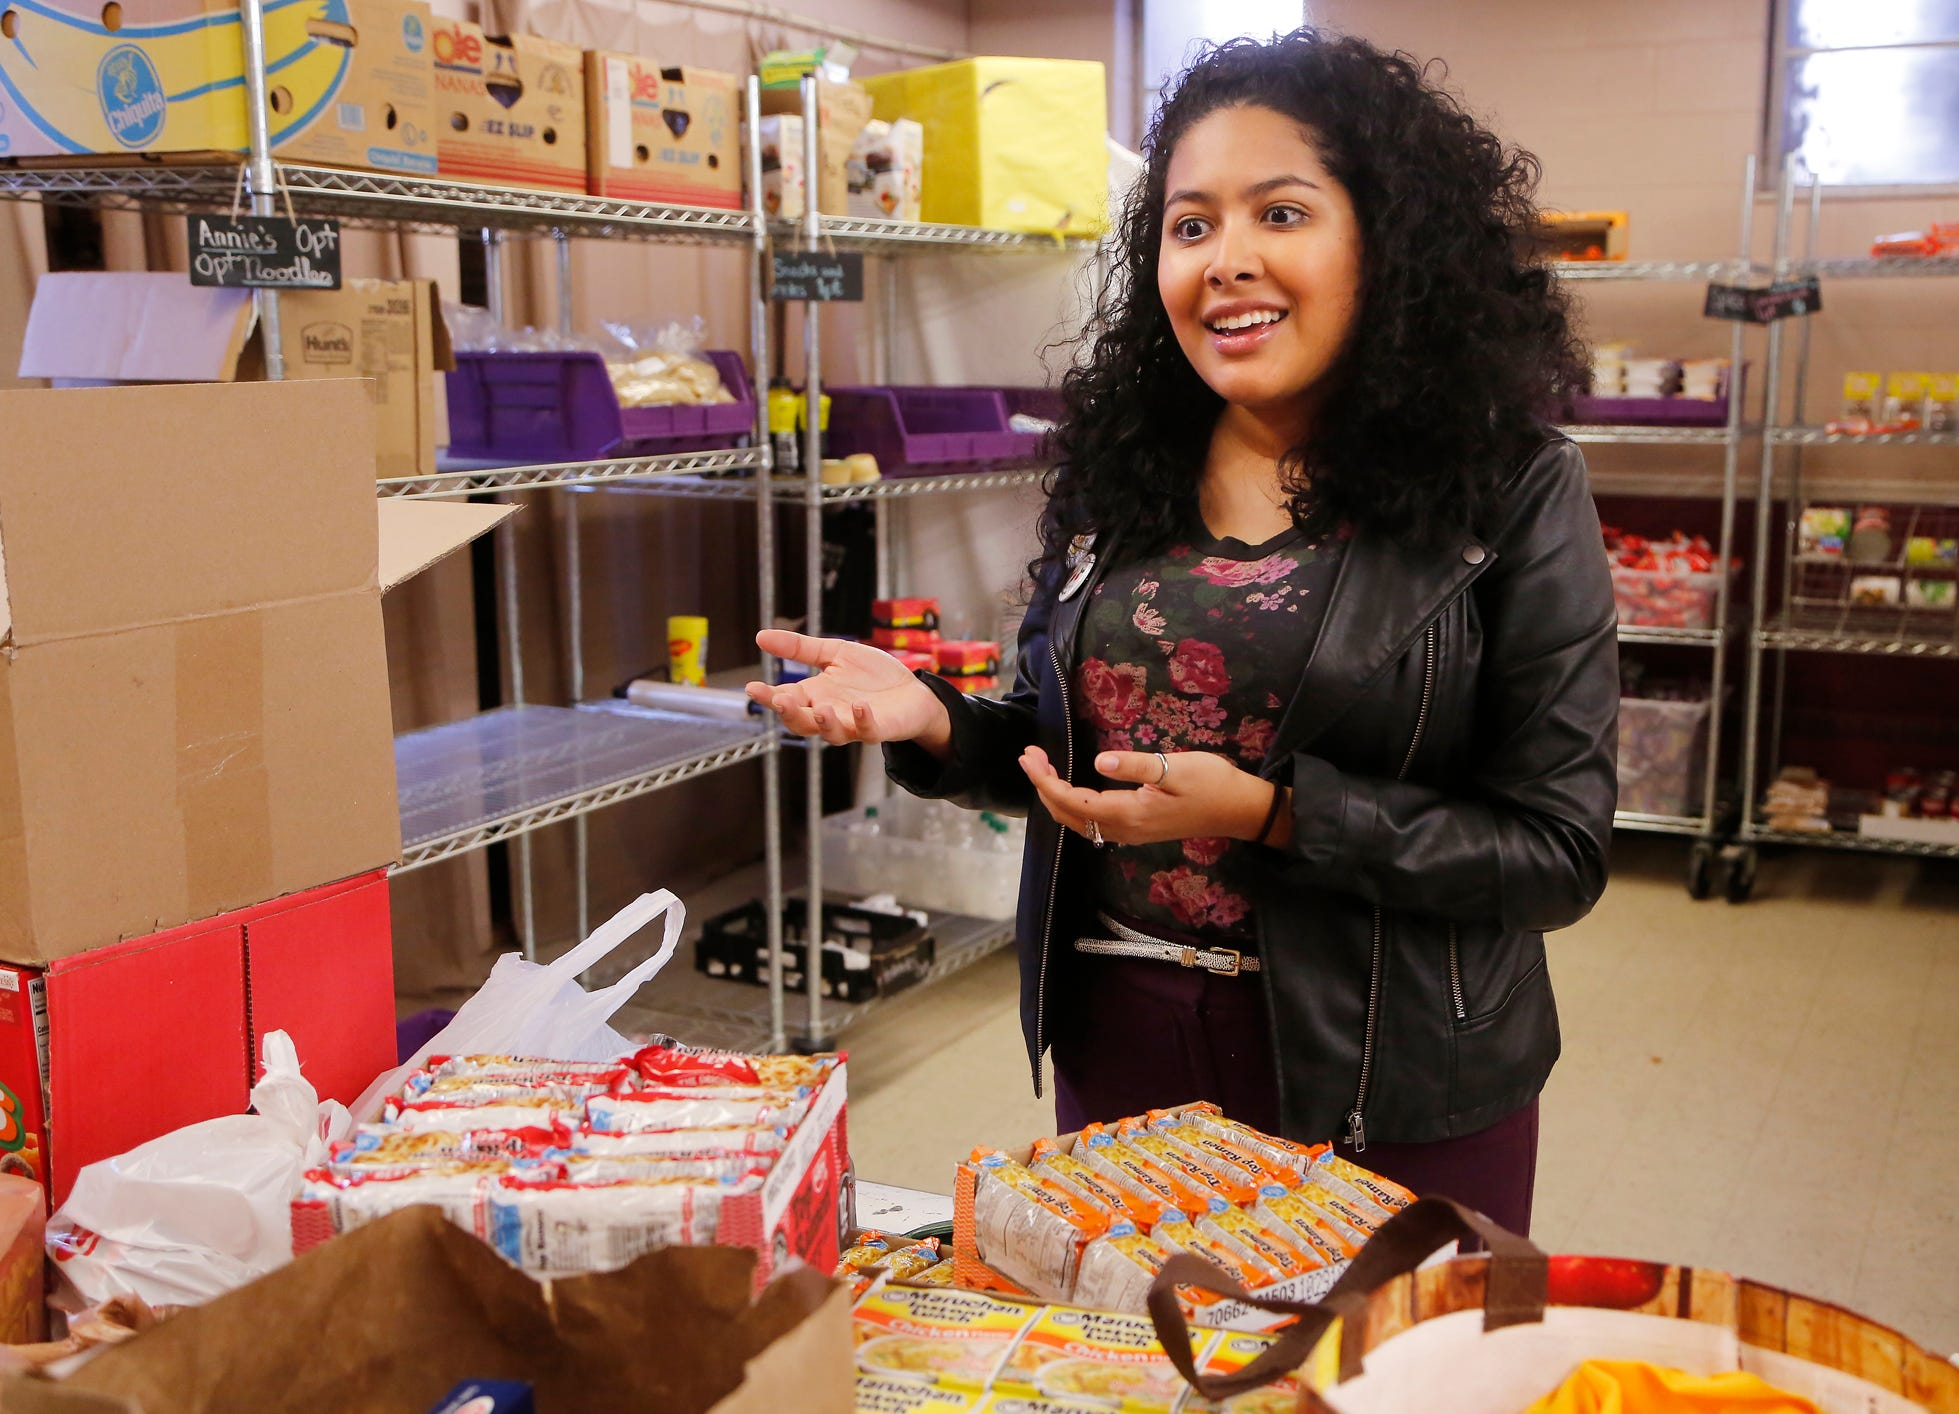 Vanessa Pacheco talks about the work by the ACE Campus Food Pantry to help address issues of food insecurity among Purdue University students, faculty and staff Wednesday, December 19, 2018, at the Baptist Student Foundation, 100 N. Russell Street in West Lafayette. Pacheco is coordinator for civic engagement at Purdue. She is also staff advisor at ACE Campus Food Pantry.